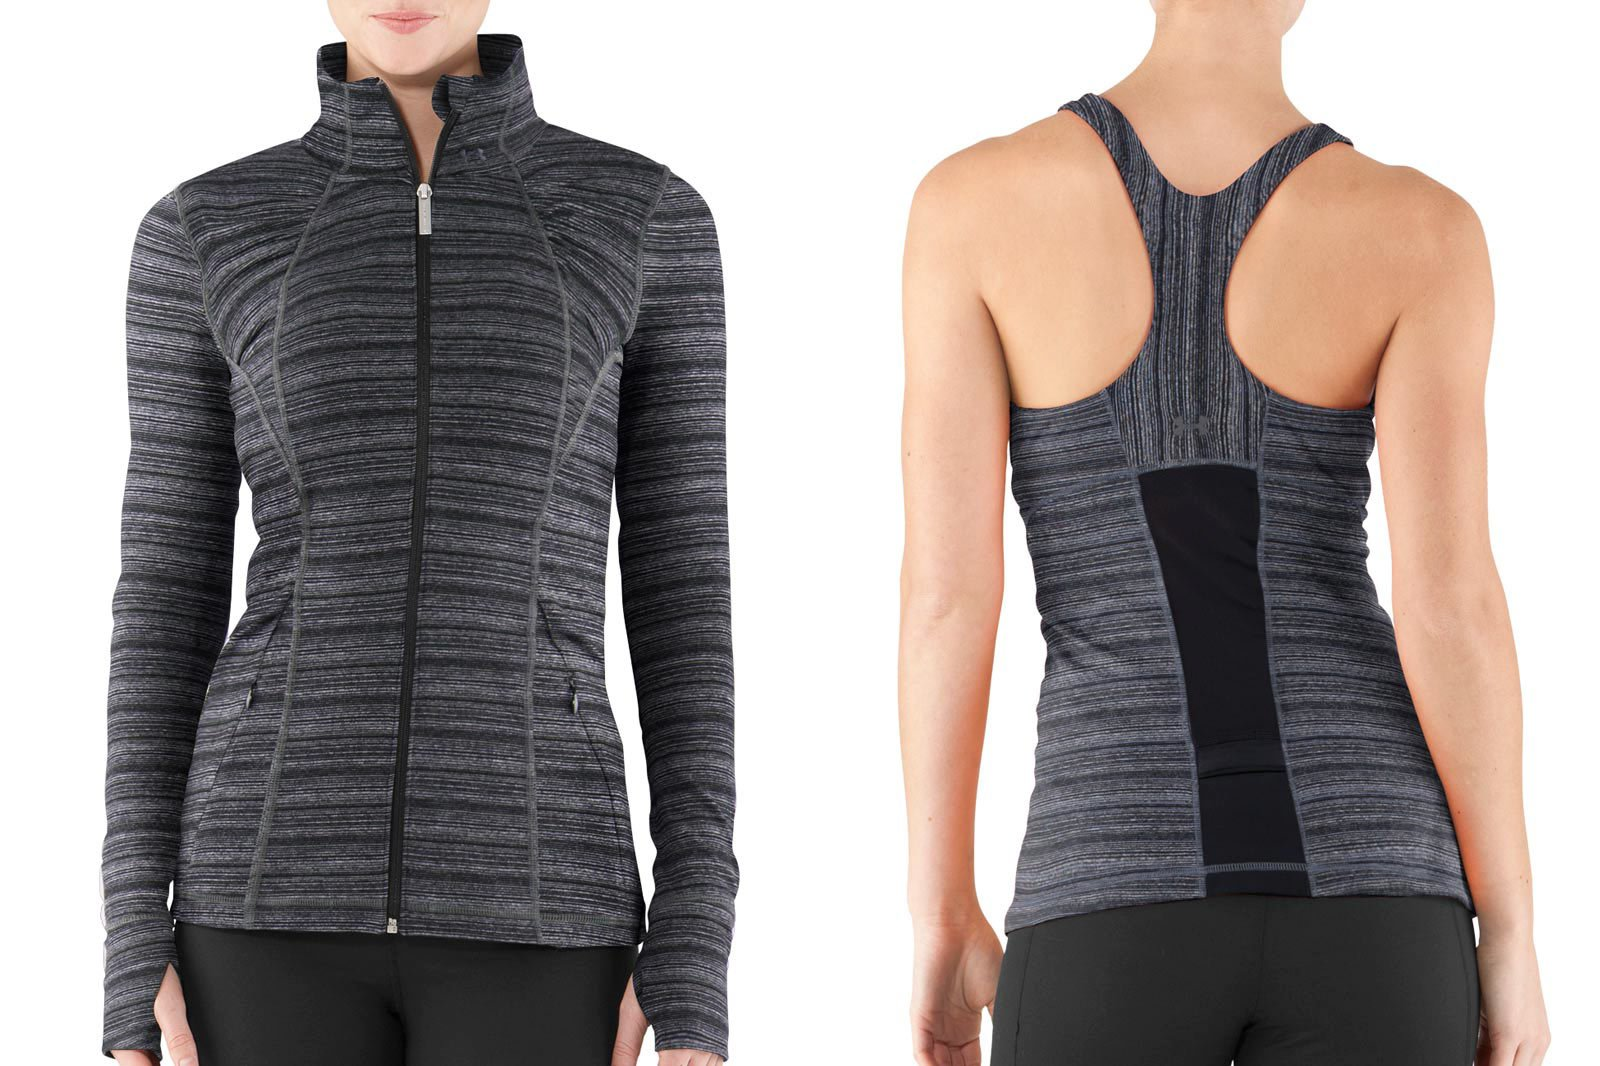 Colorways example - athletic wear for women black pattern